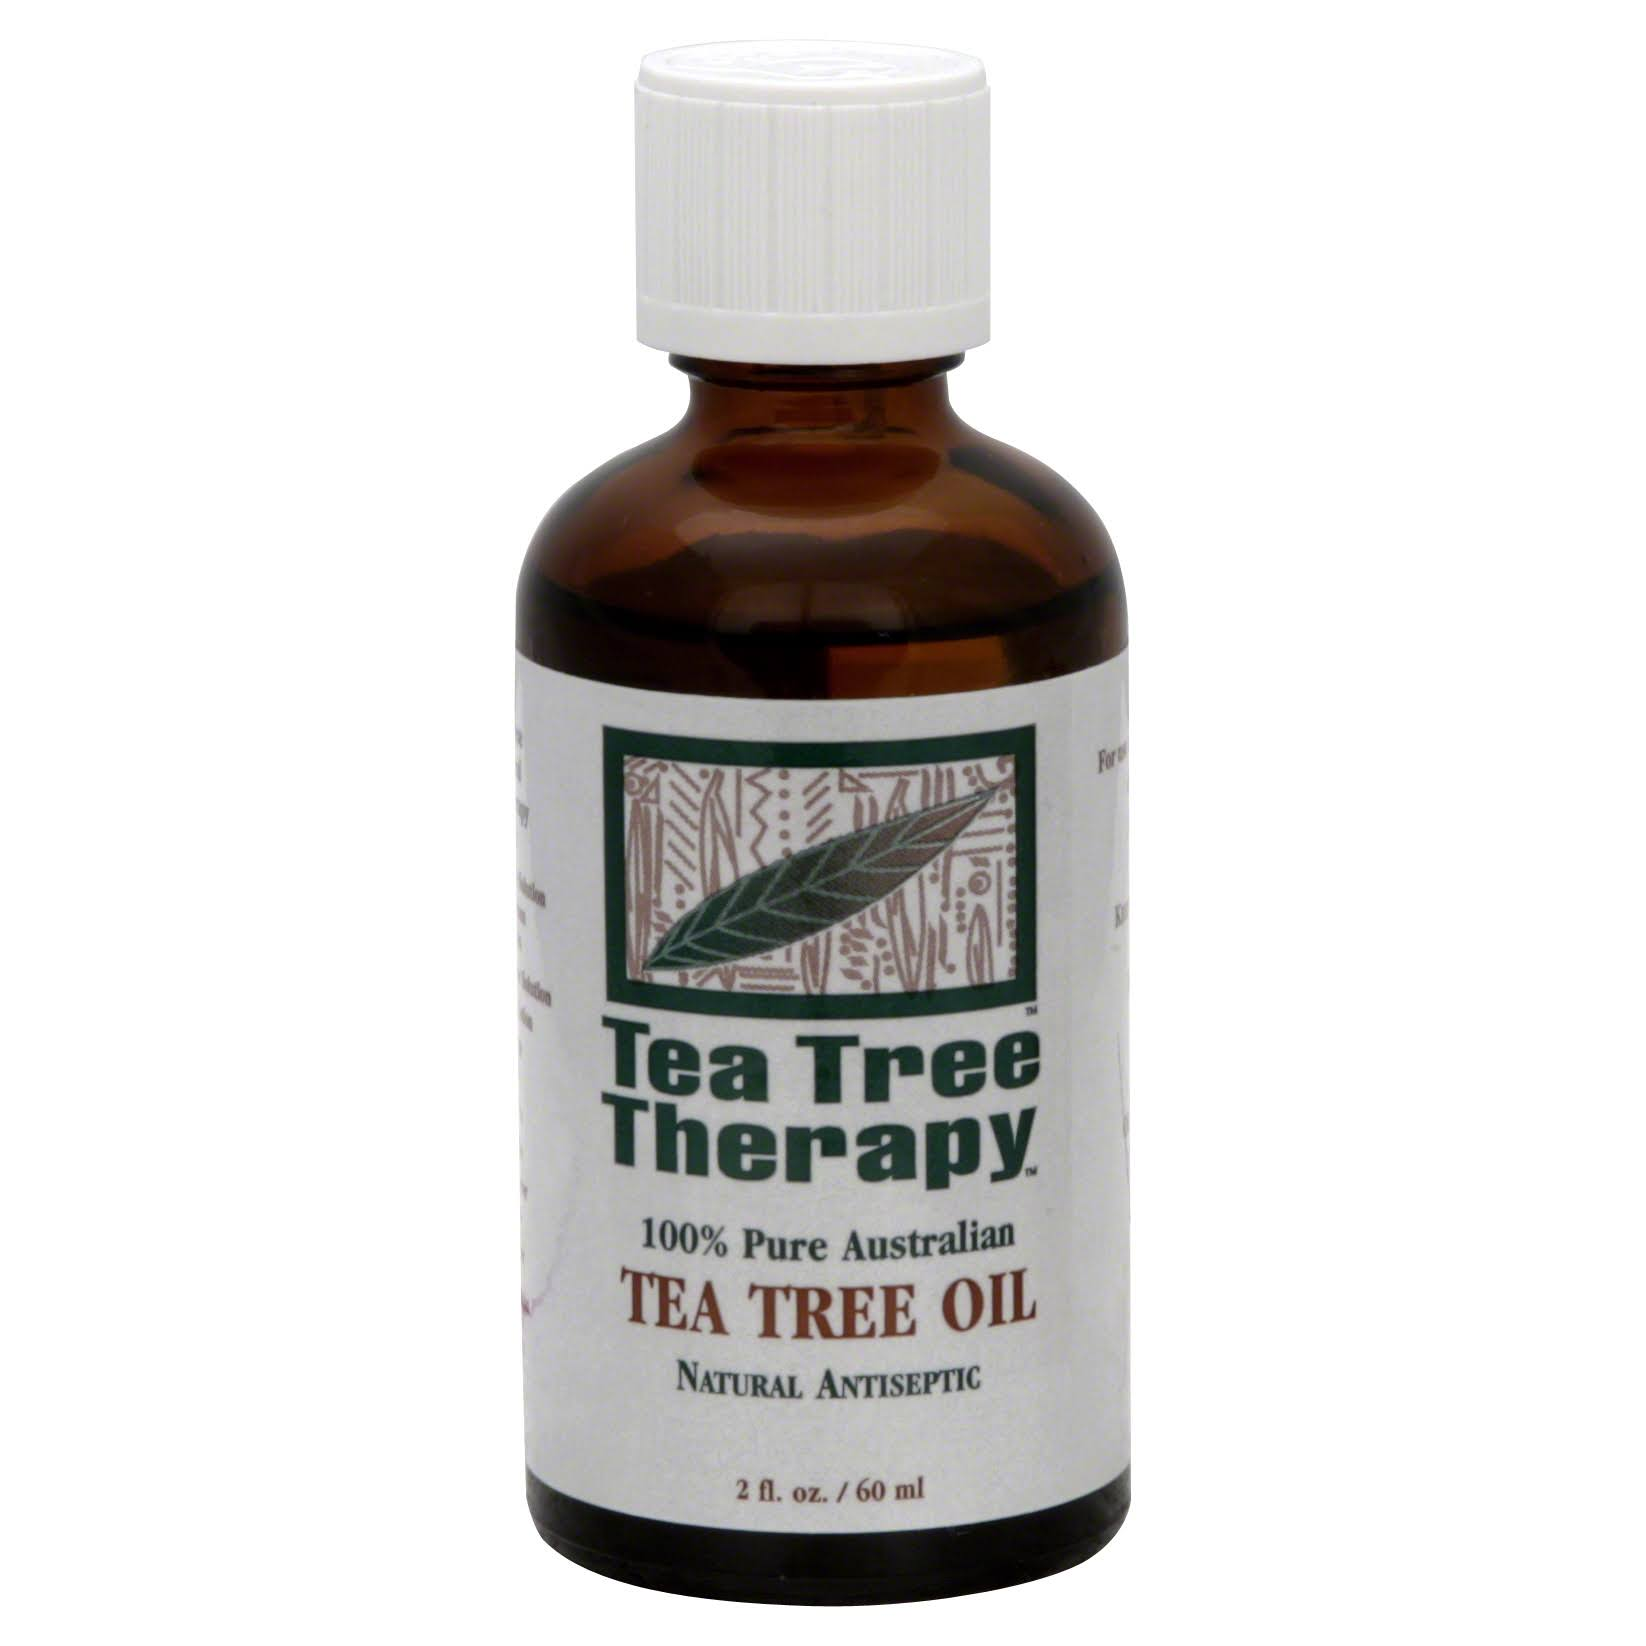 Tea Tree Therapy Pure Tea Tree Oil - 2oz